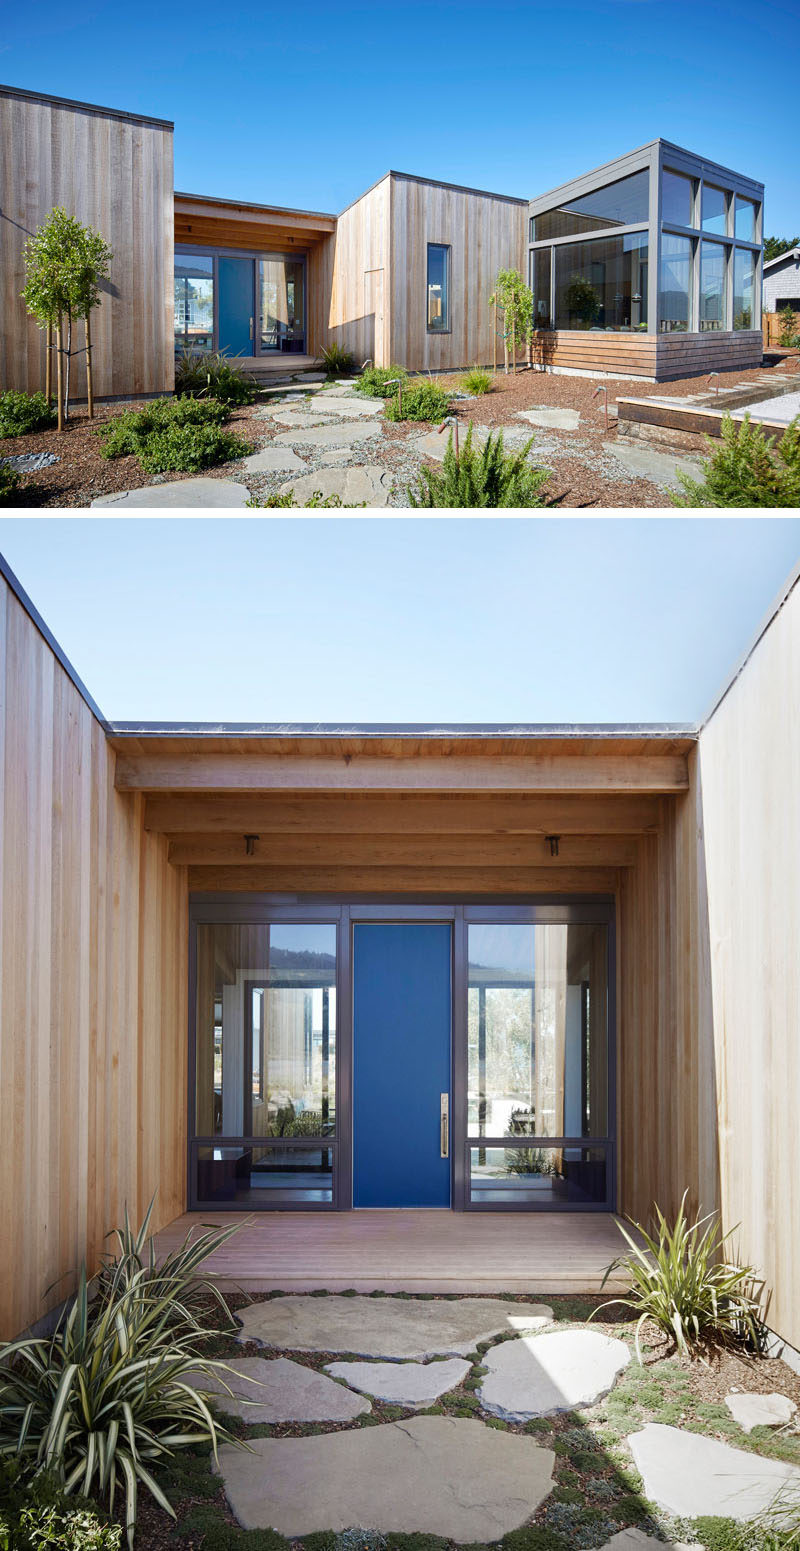 his Modern House In alifornia Was Designed With Hot-ub Next ... - ^